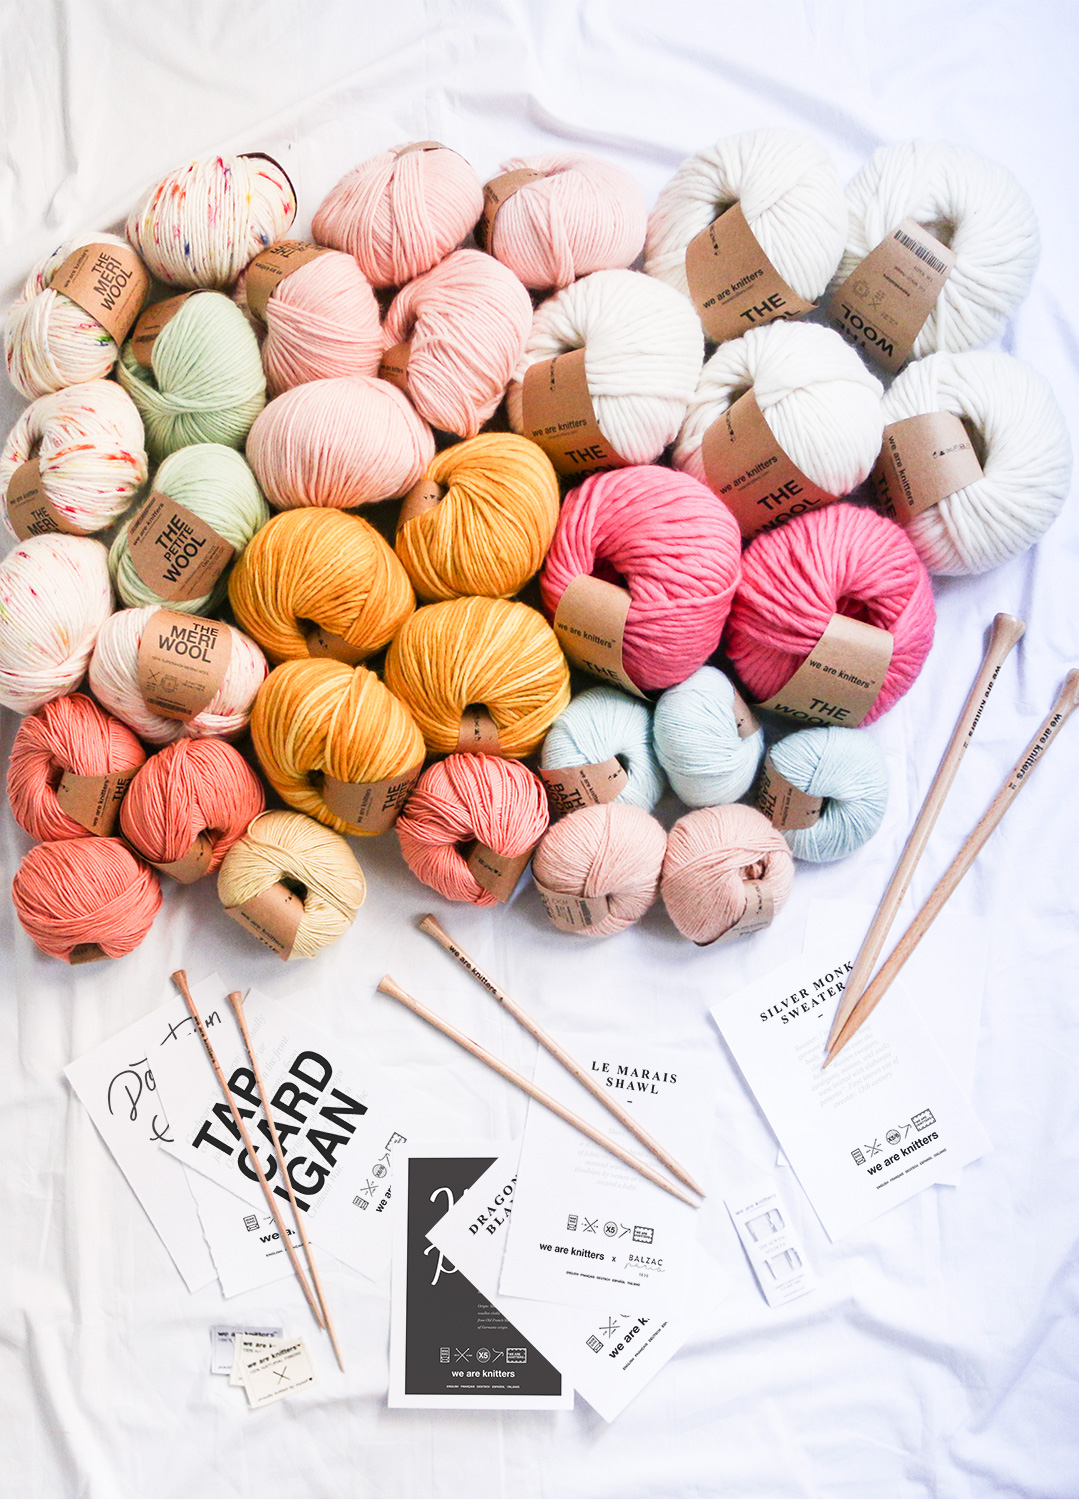 We Are Knitters yarn and needles